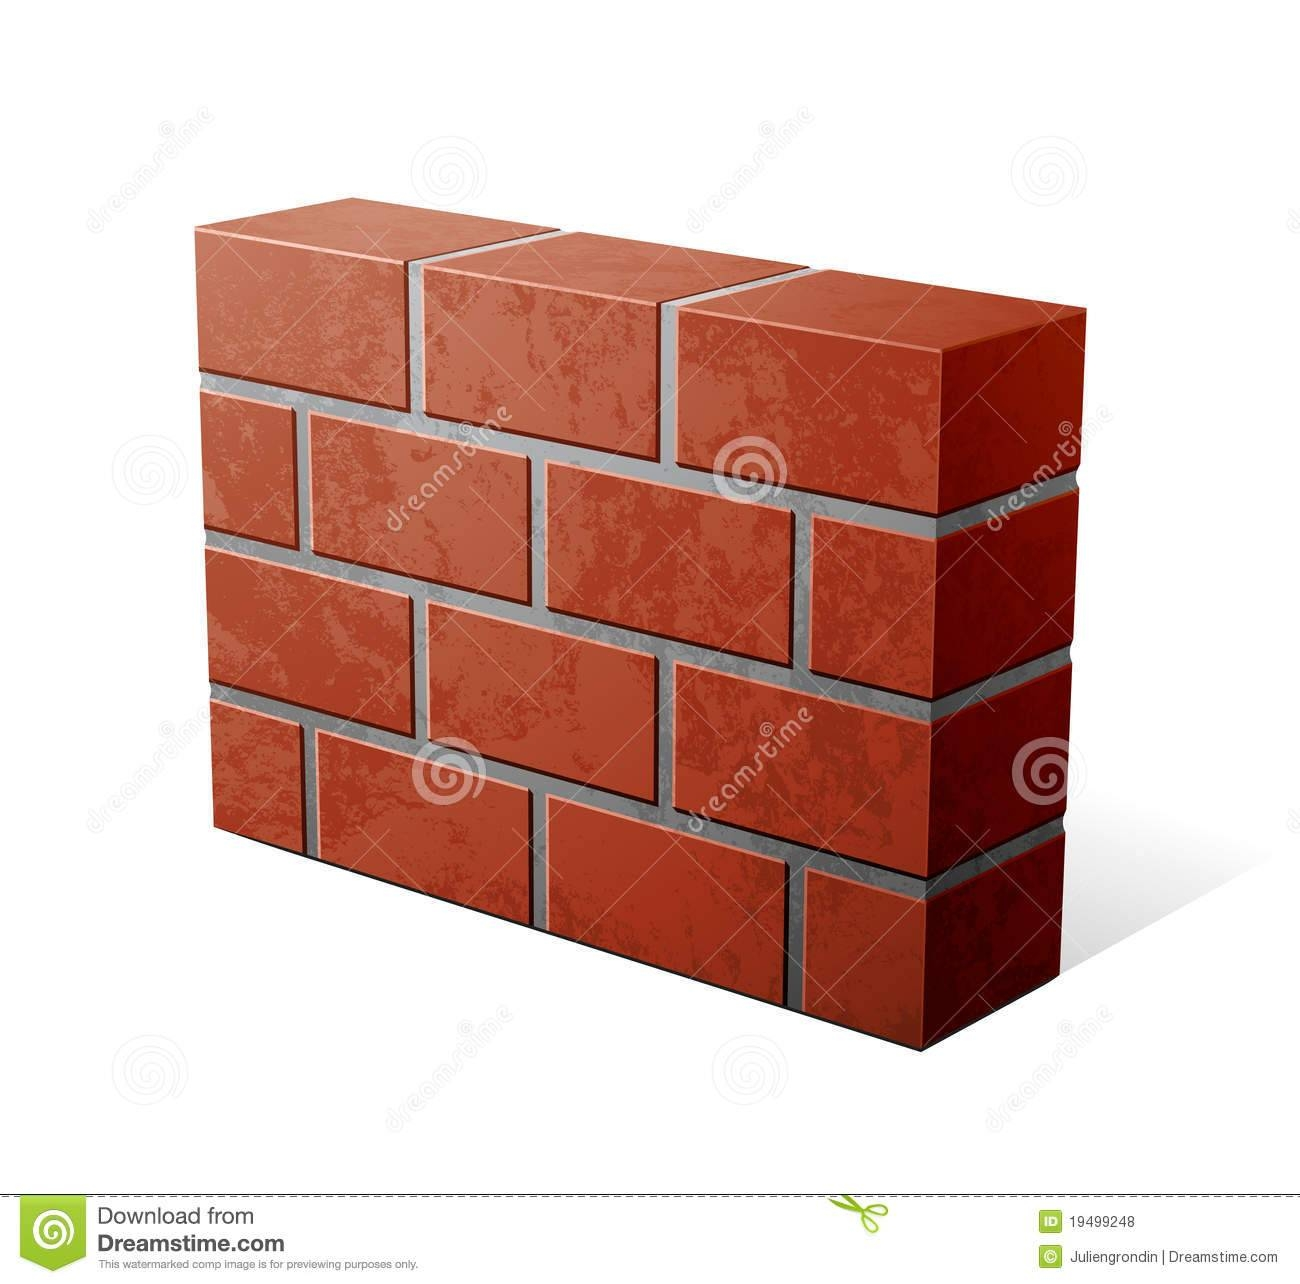 3D Clipart Brick Wall - Pencil And In Color 3D Clipart Brick Wall regarding Most Up-to-Date 3D Brick Wall Art